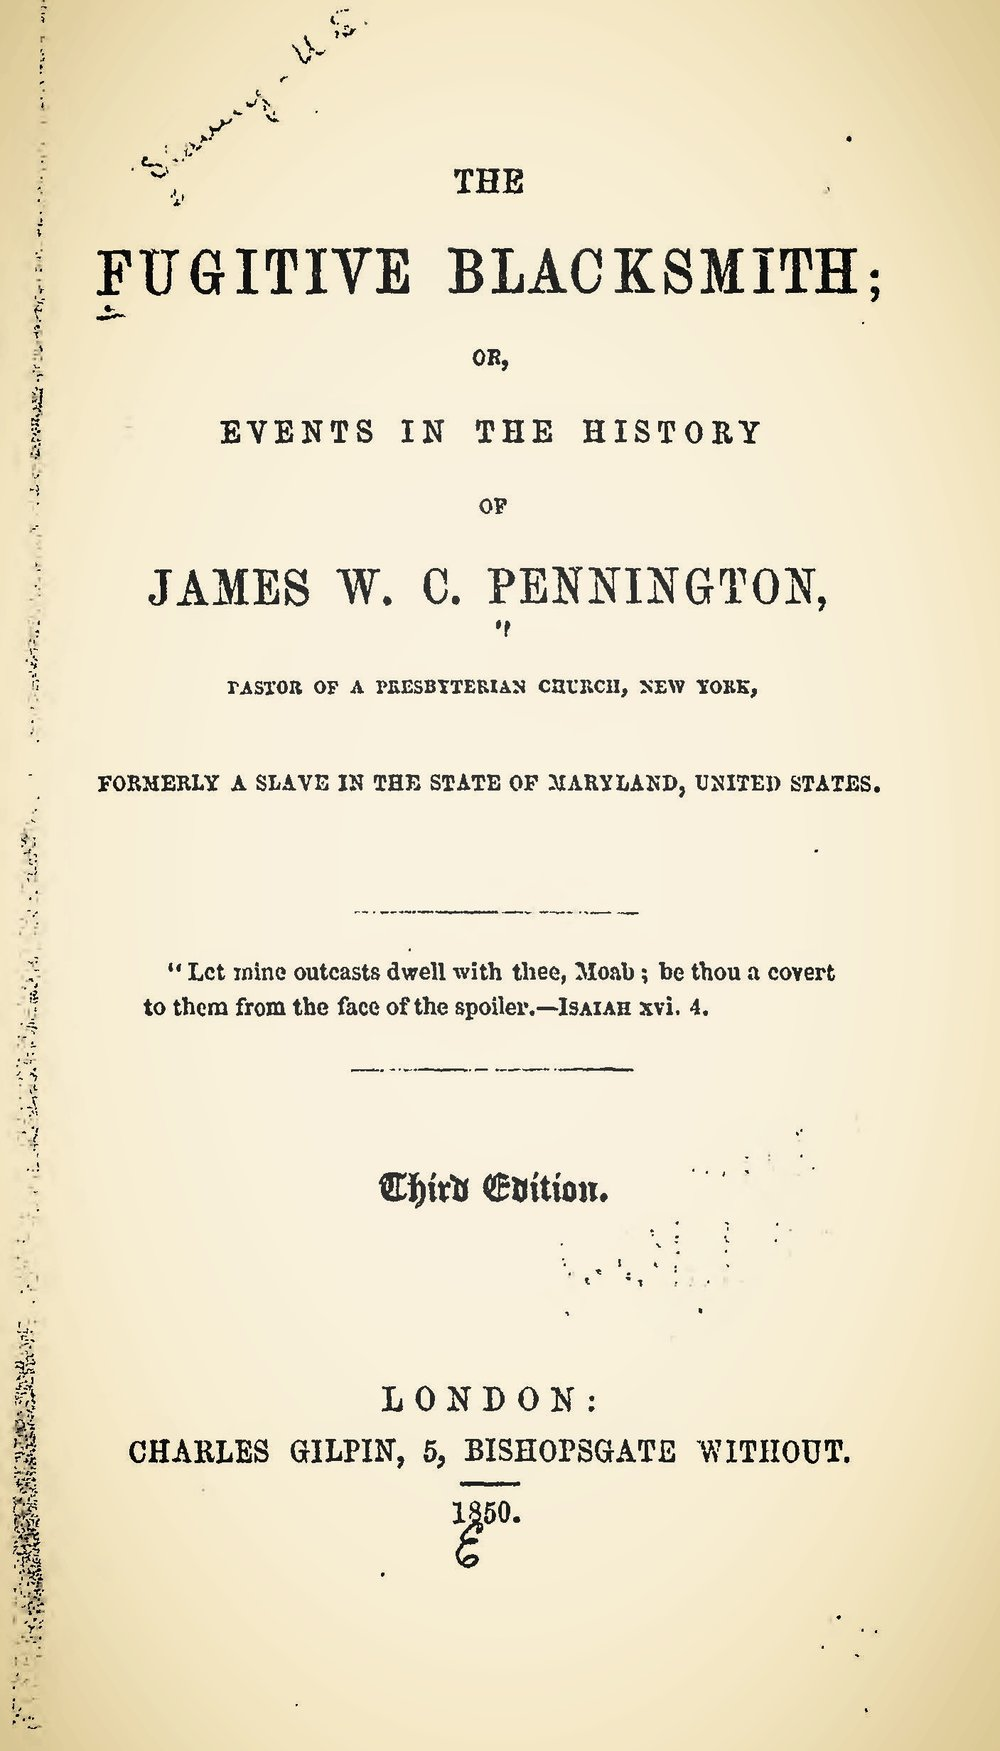 Pennington, James W.C., The Fugitive Blacksmith Title Page.jpg